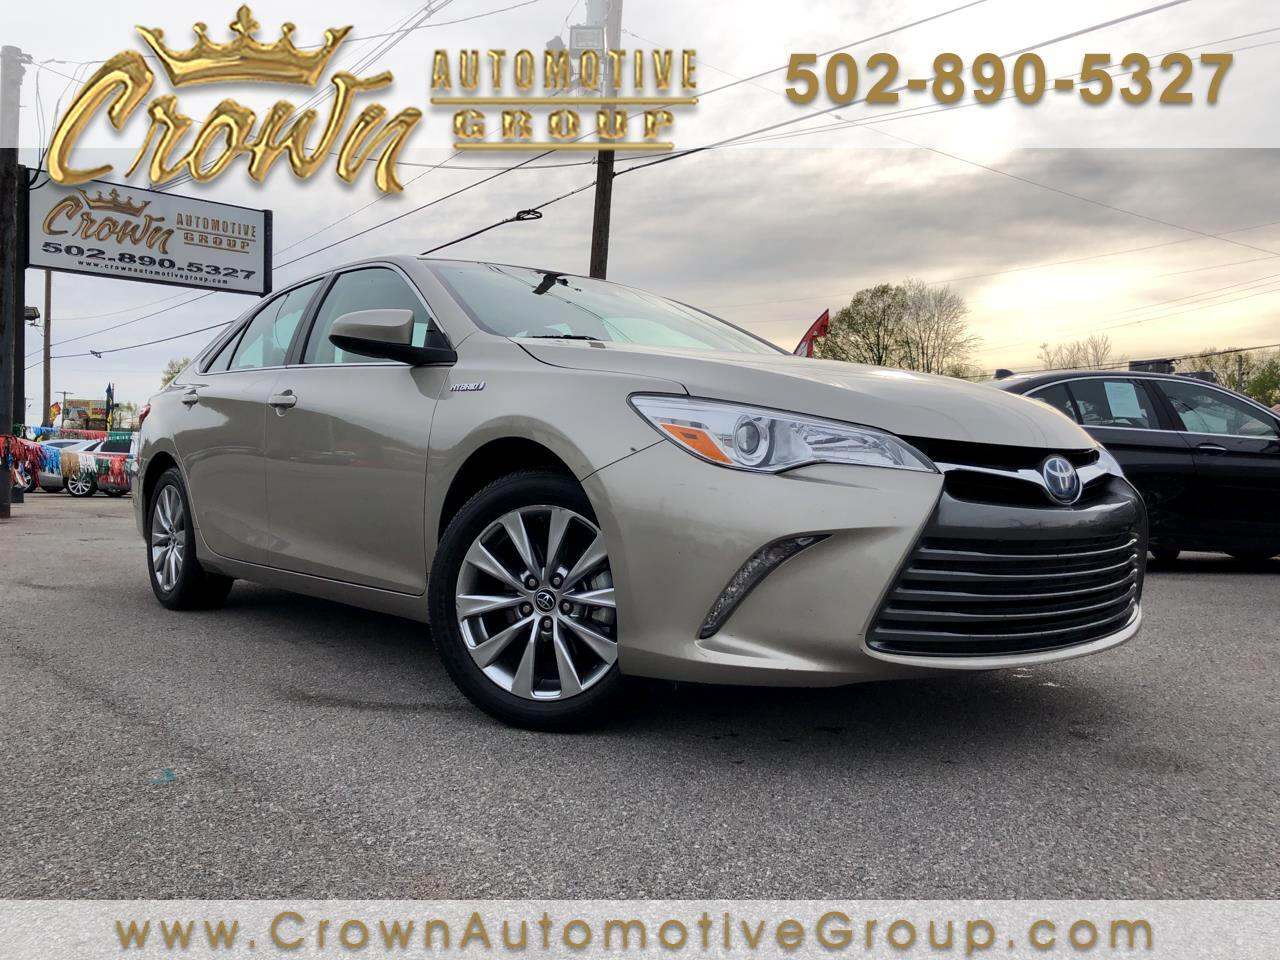 2016 Toyota Camry Hybrid 4dr Sdn LE (Natl)